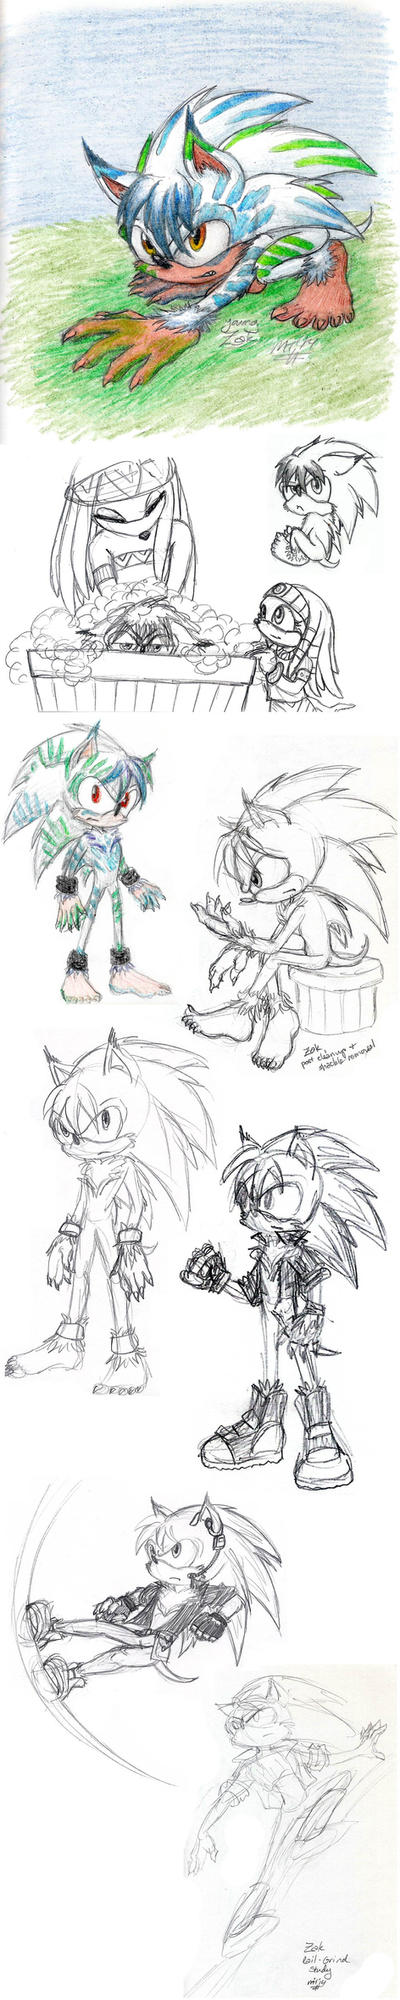 Sketchdump - Zak Redesigned by ah-kaziya